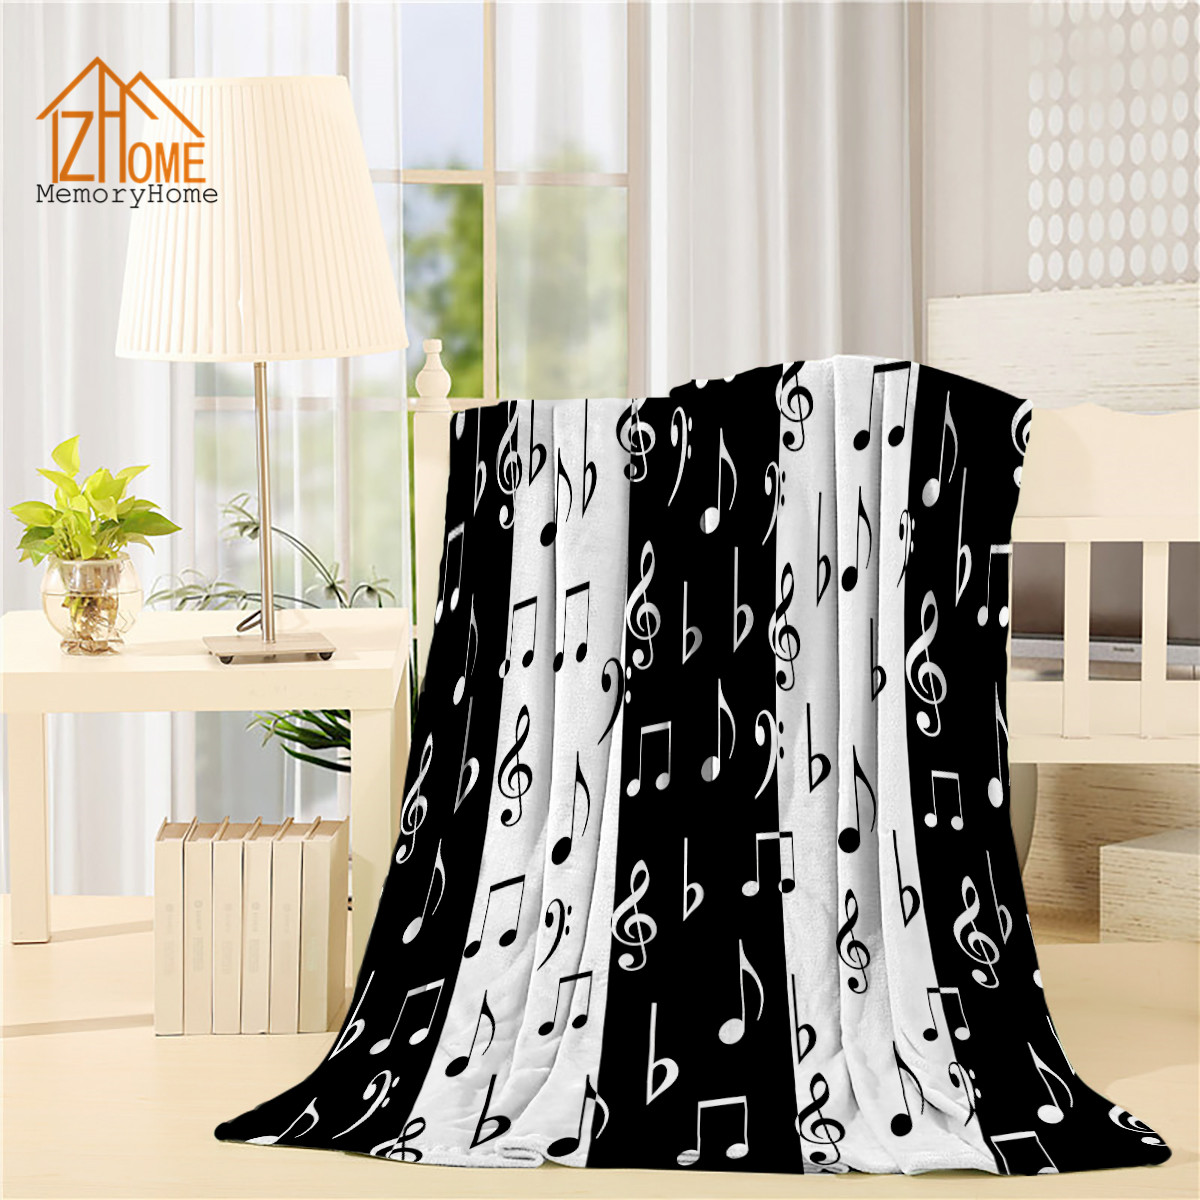 Memory Home Fleece Blanket Throw Fashionable Music Lovers Musical Notes Pattern Black White Baby Adults Super Warm Bed Blanket(China)